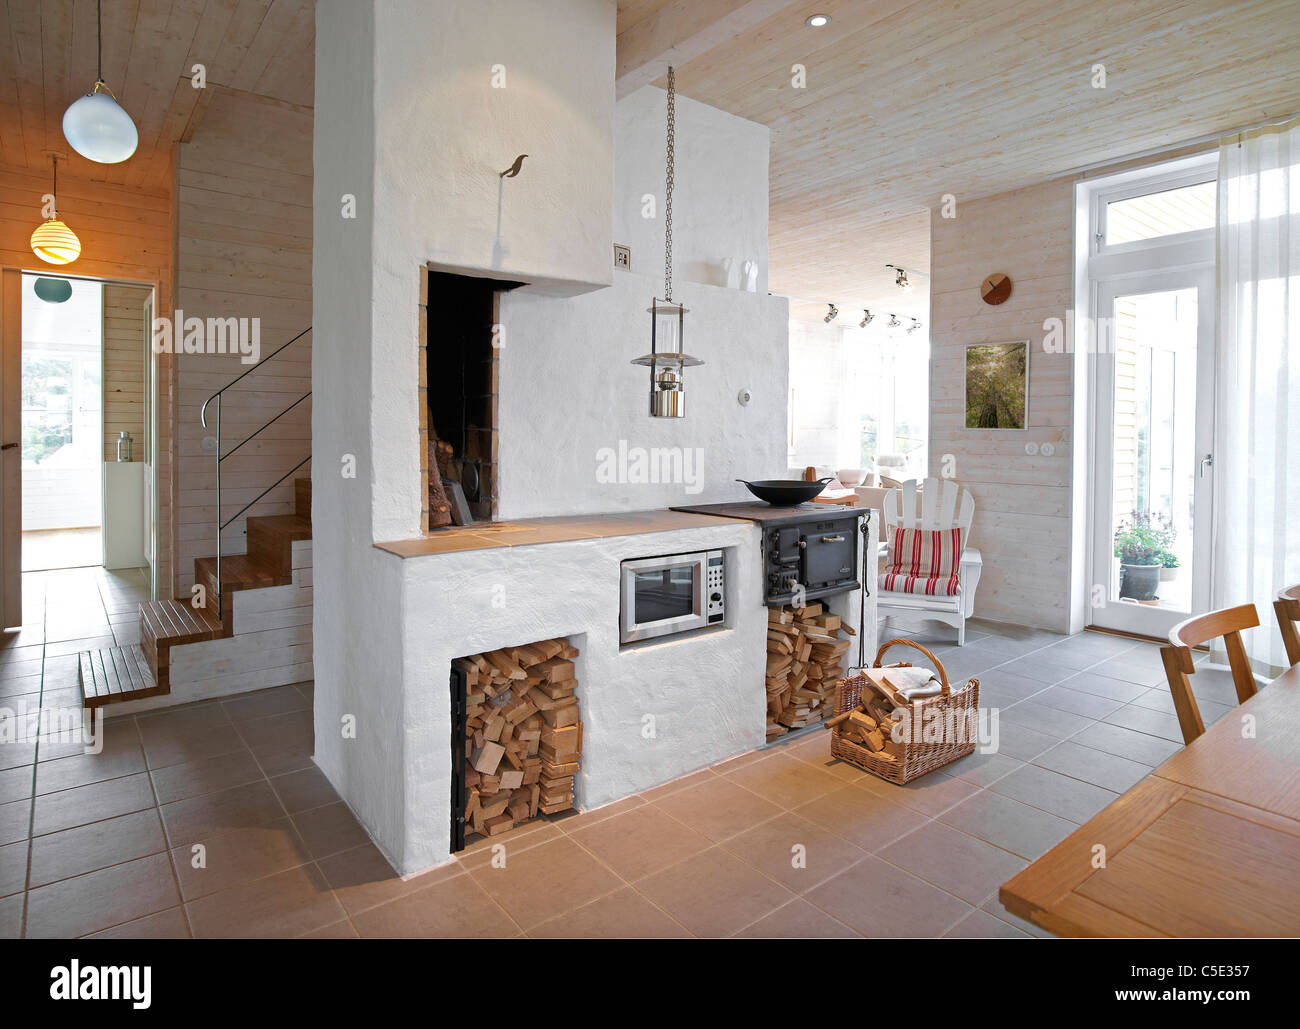 View of the spacious kitchen interior at home - Stock Image